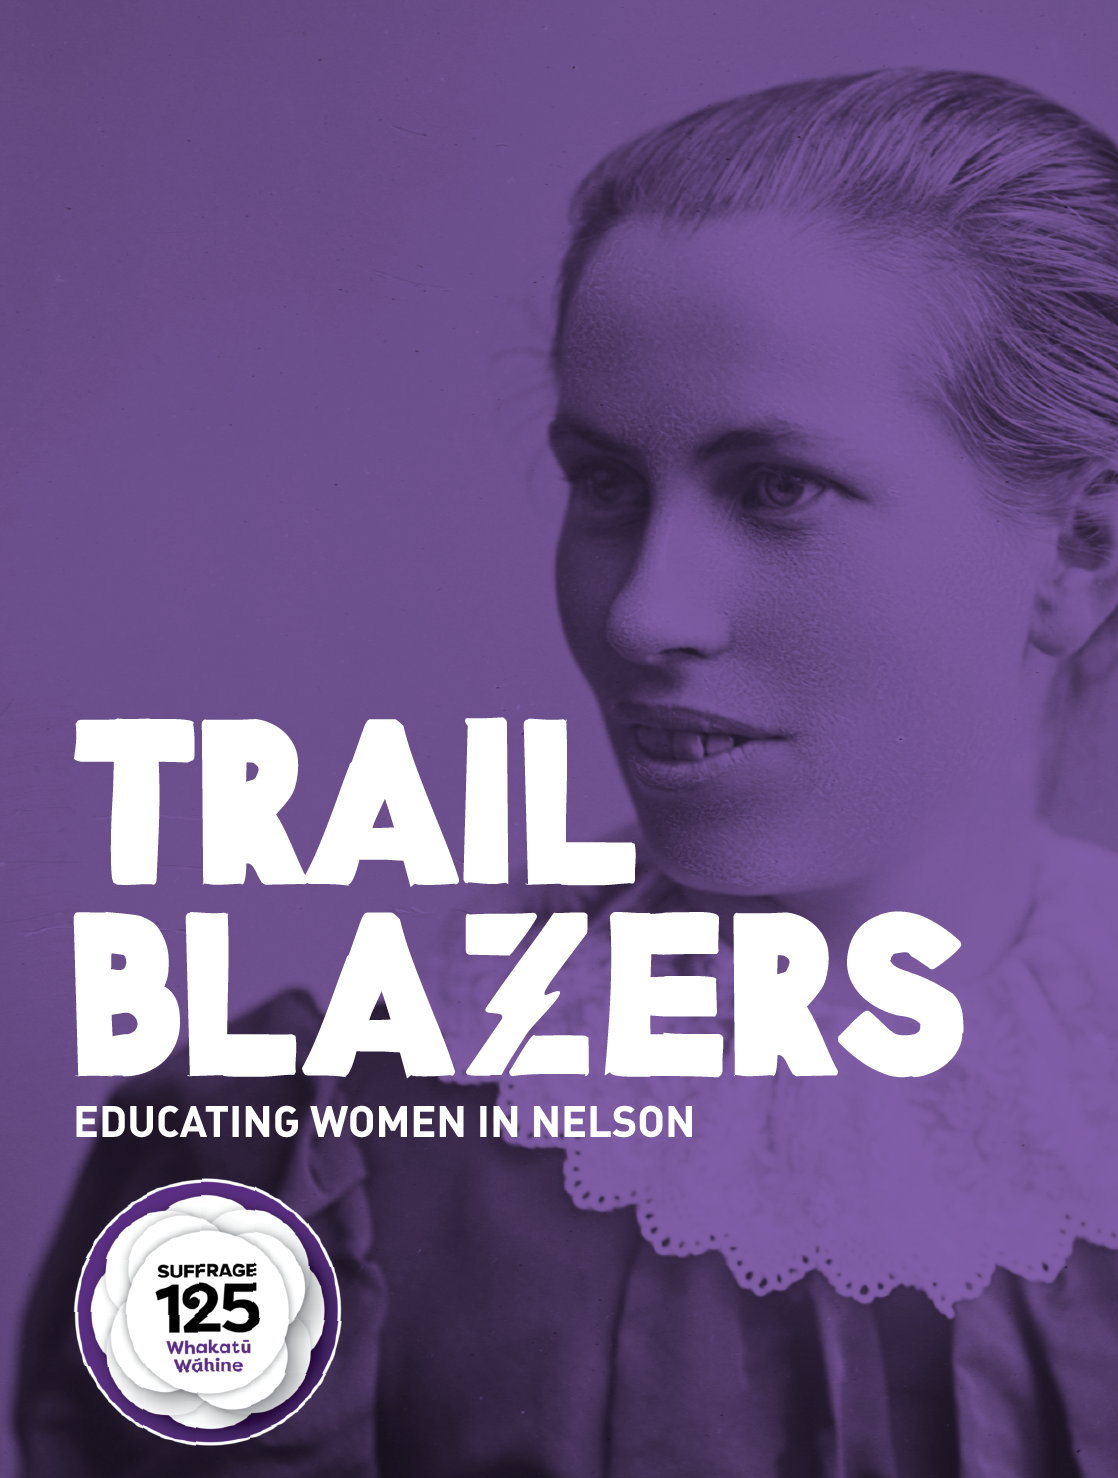 trailblazers-02.png